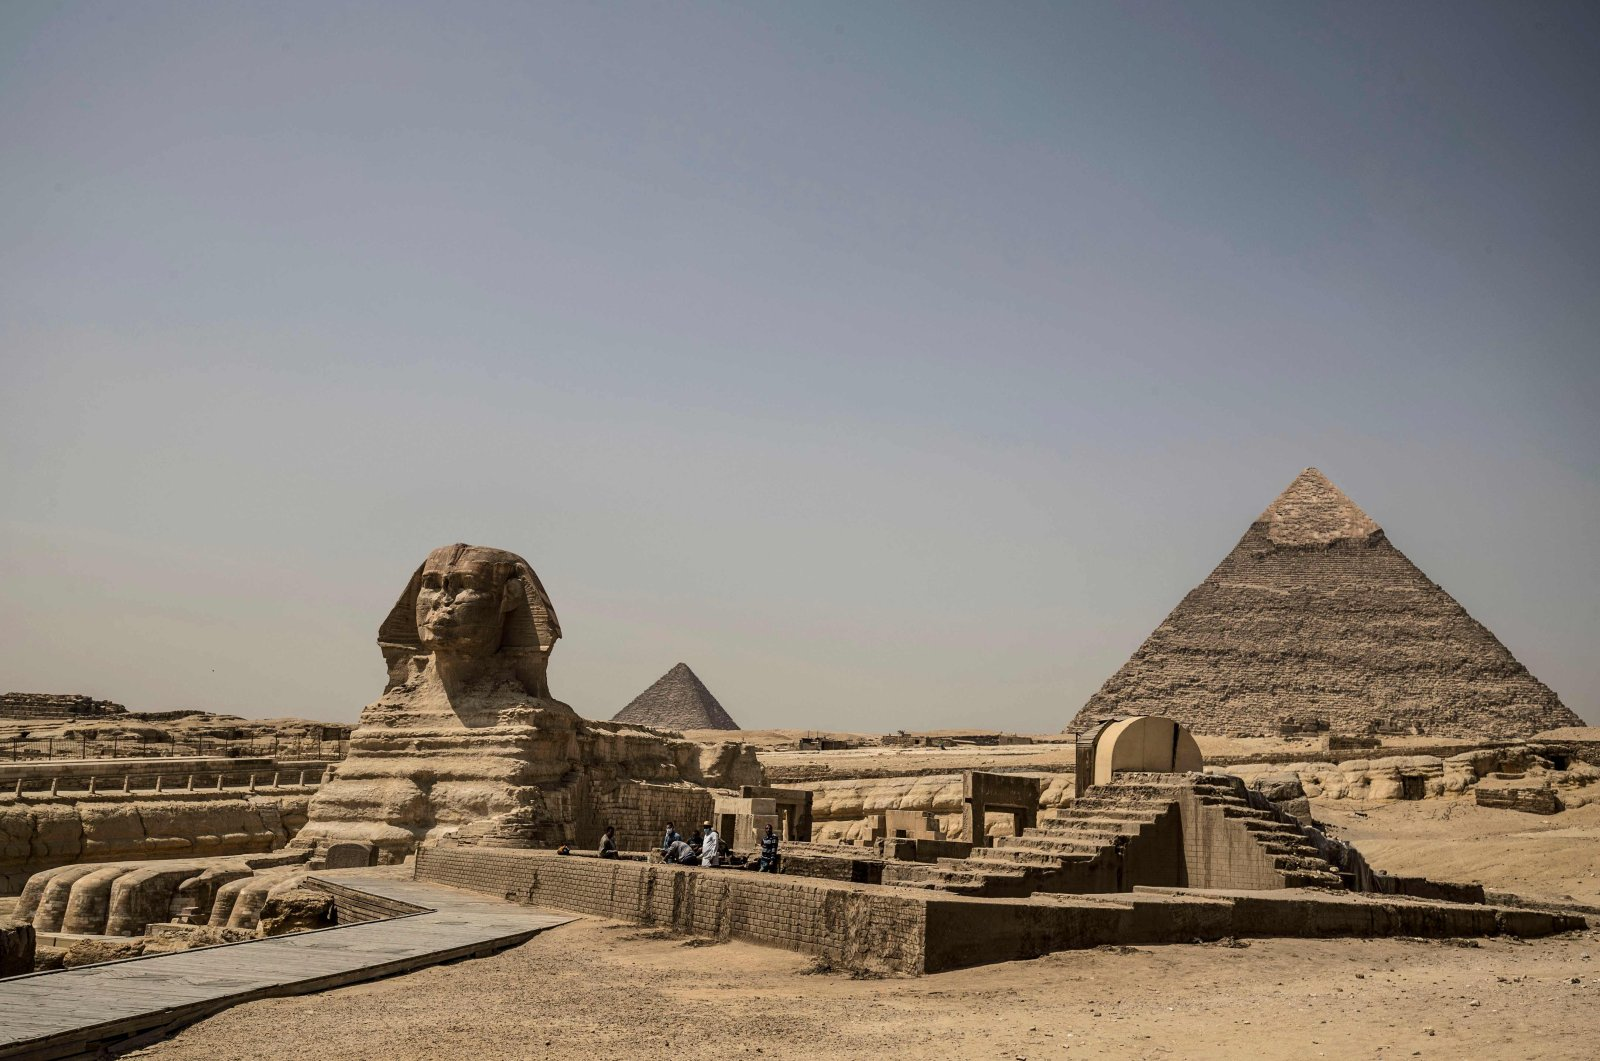 The Giza pyramids necropolis on the southwestern outskirts of the Egyptian capital Cairo is pictured empty after the site closed to the general public as a protective measure against the spread of the coronavirus COVID-19 on March 25, 2020. (AFP Photo)